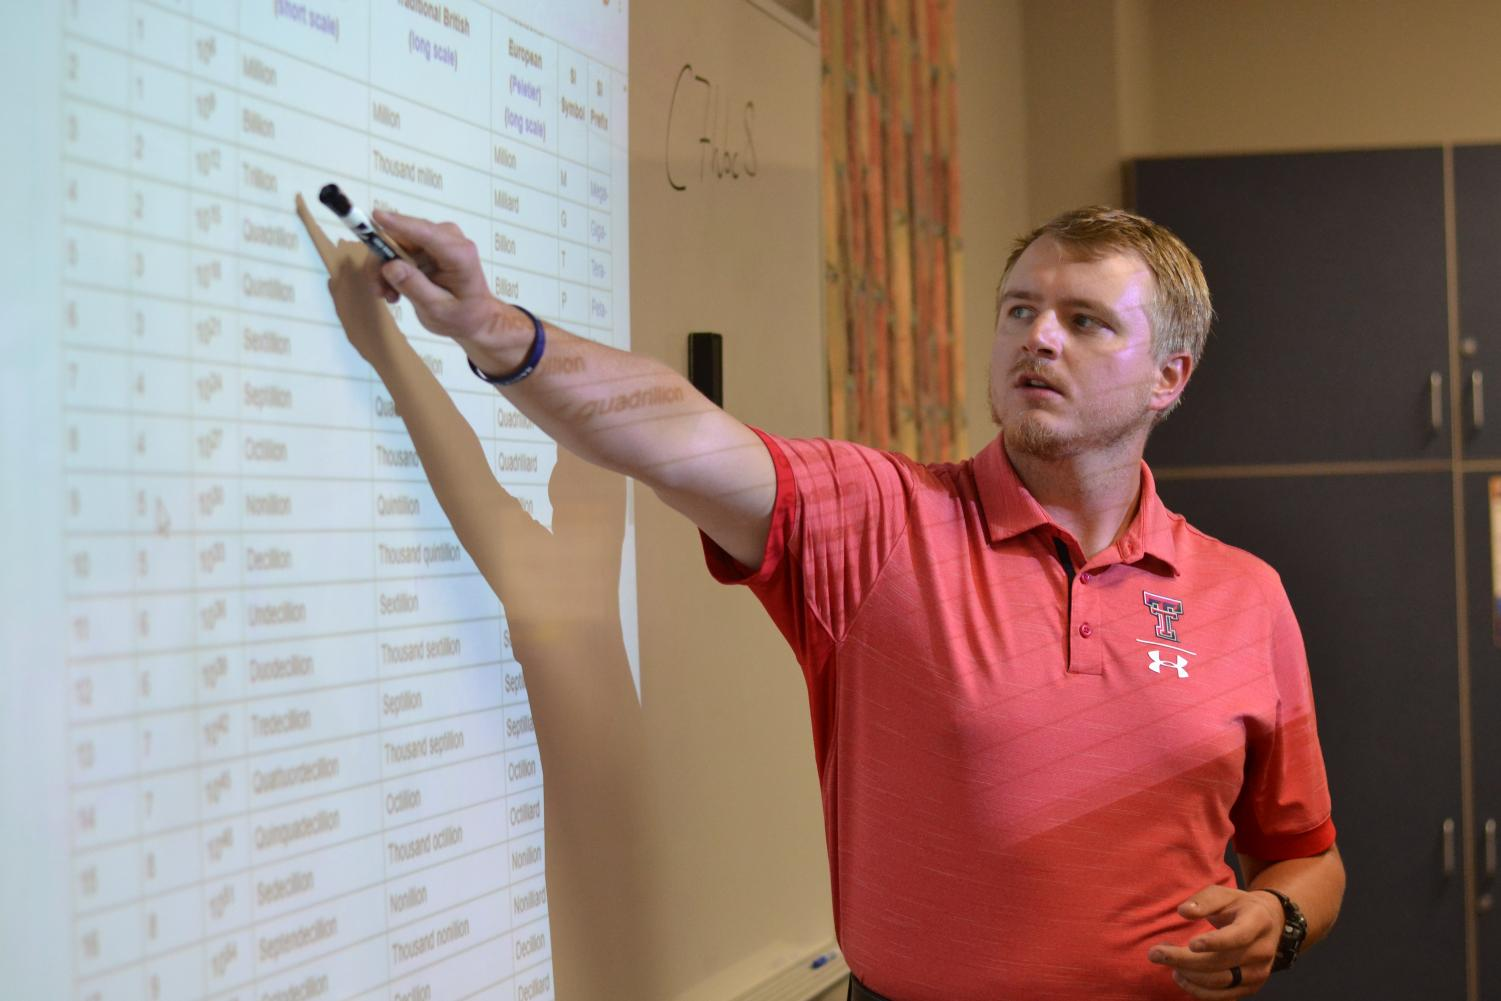 In the Limits // Plugging in numbers, new varsity coach and teacher from Daingerfield-Lone Star ISD, Coach Hunter Henzler instructs his math college prep class during his second week, about the number 1 billion.